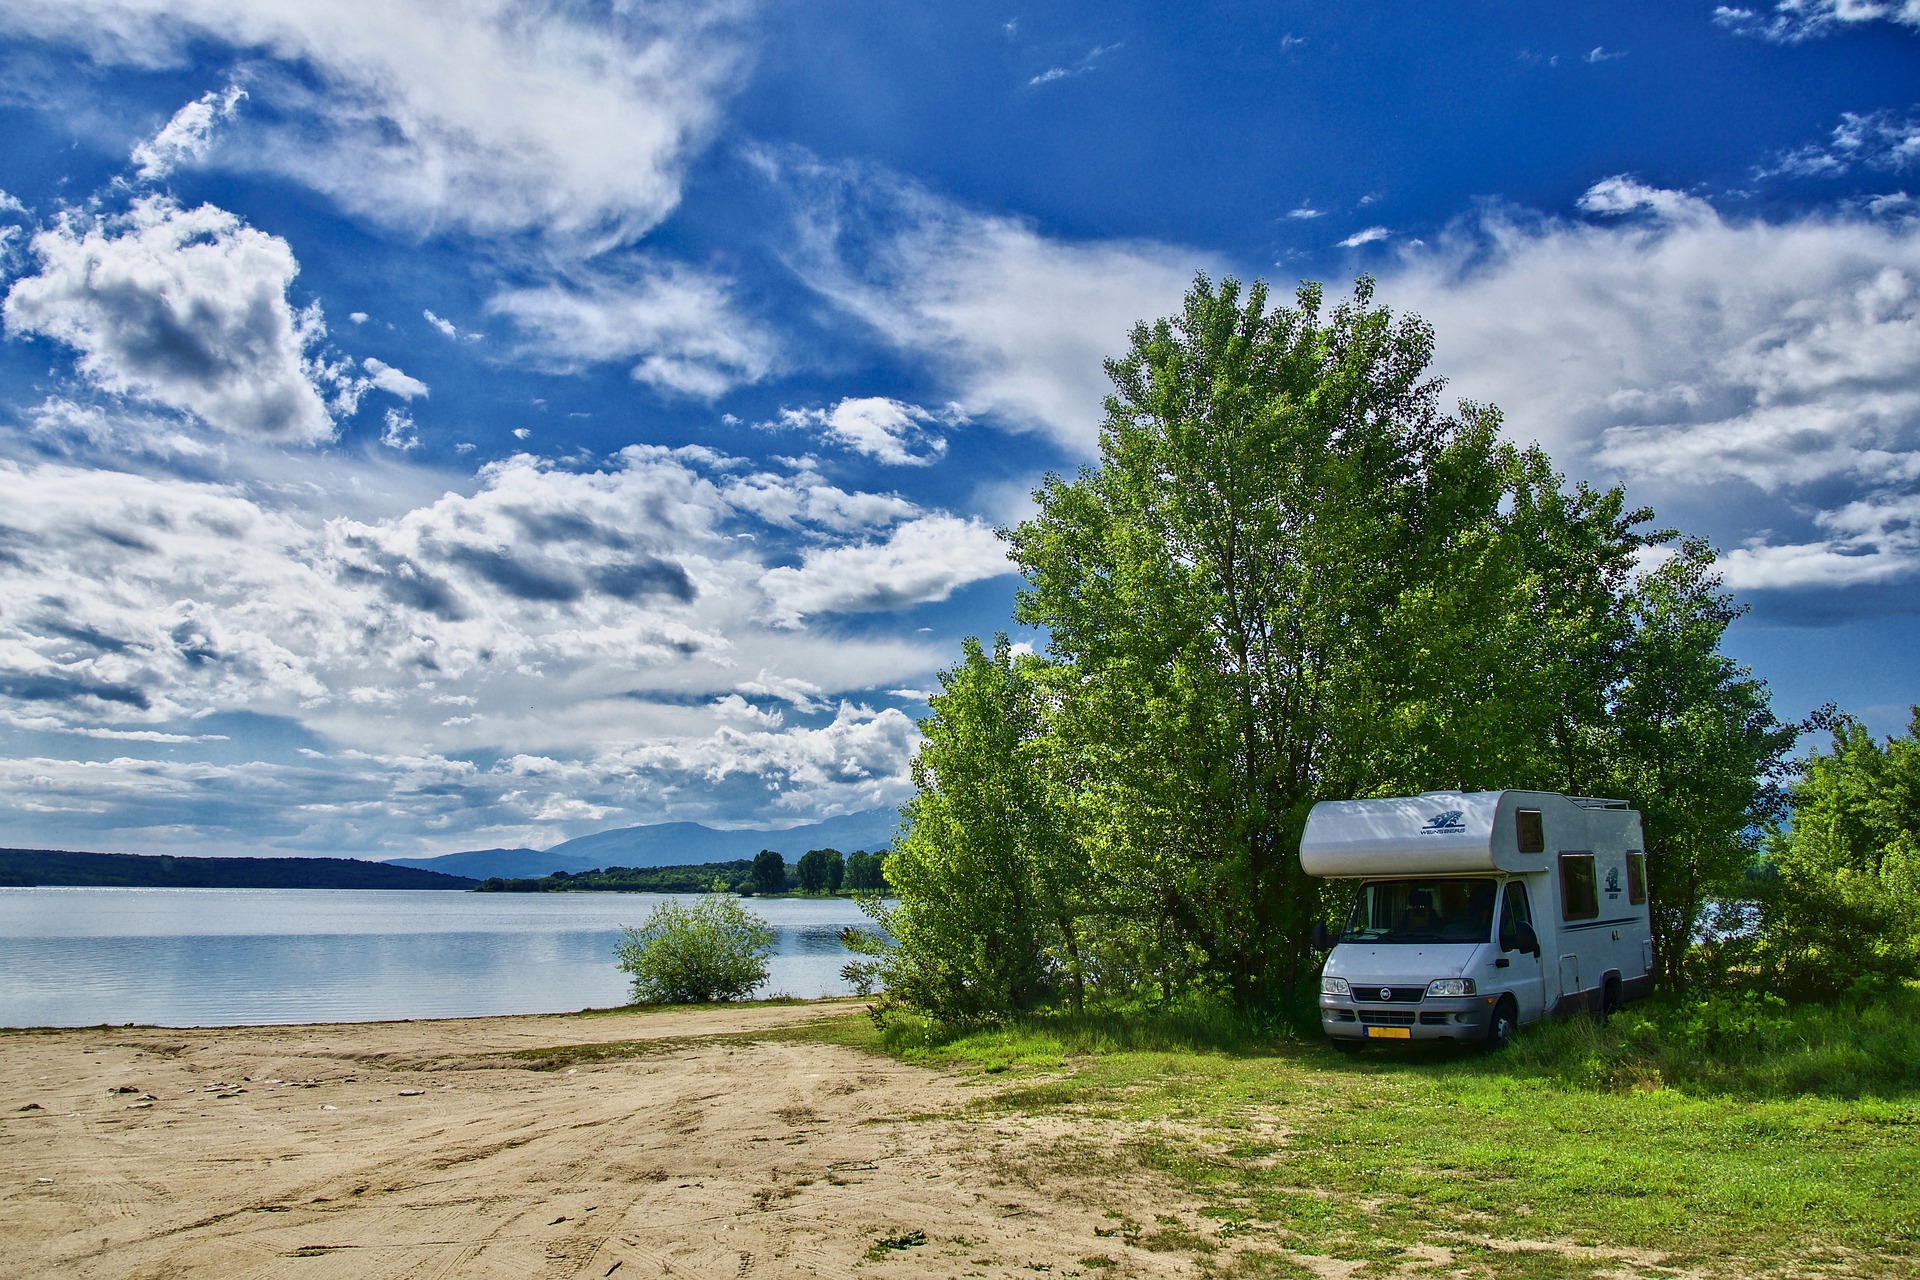 Motorhome by a lake